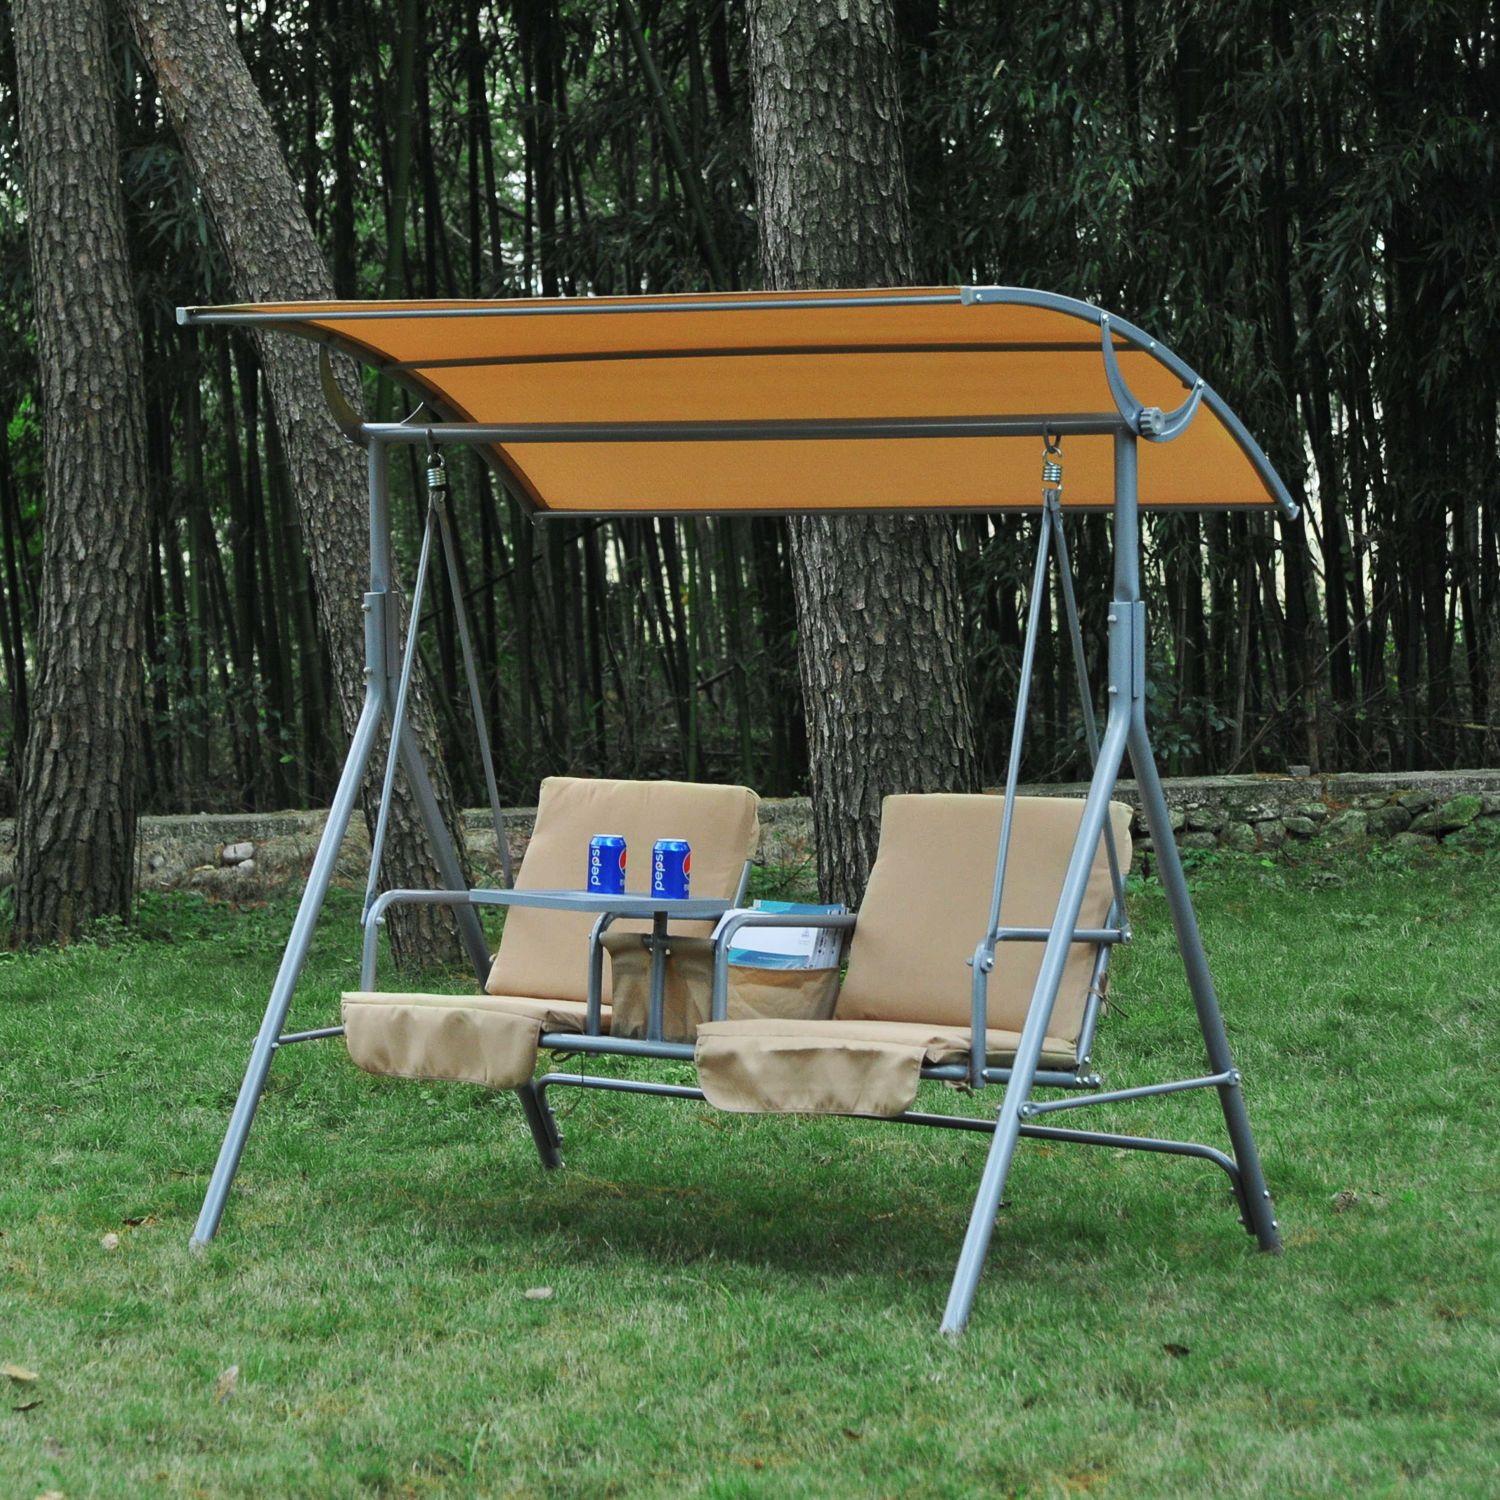 Outdoor Swing Chair Canopy Patio Garden Hanging 2 Person Yard